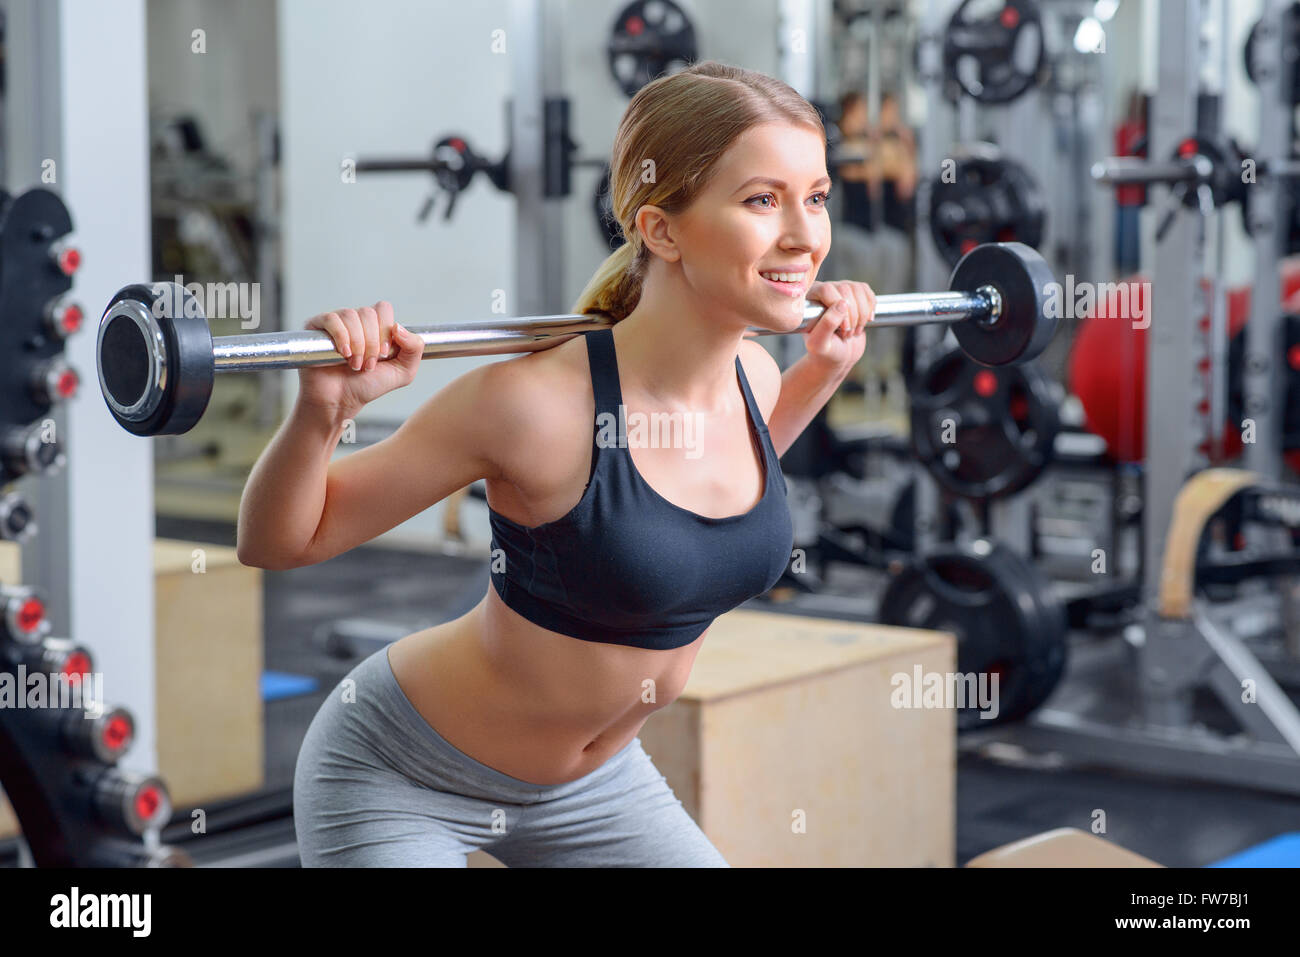 Nice girl holding barbell - Stock Image